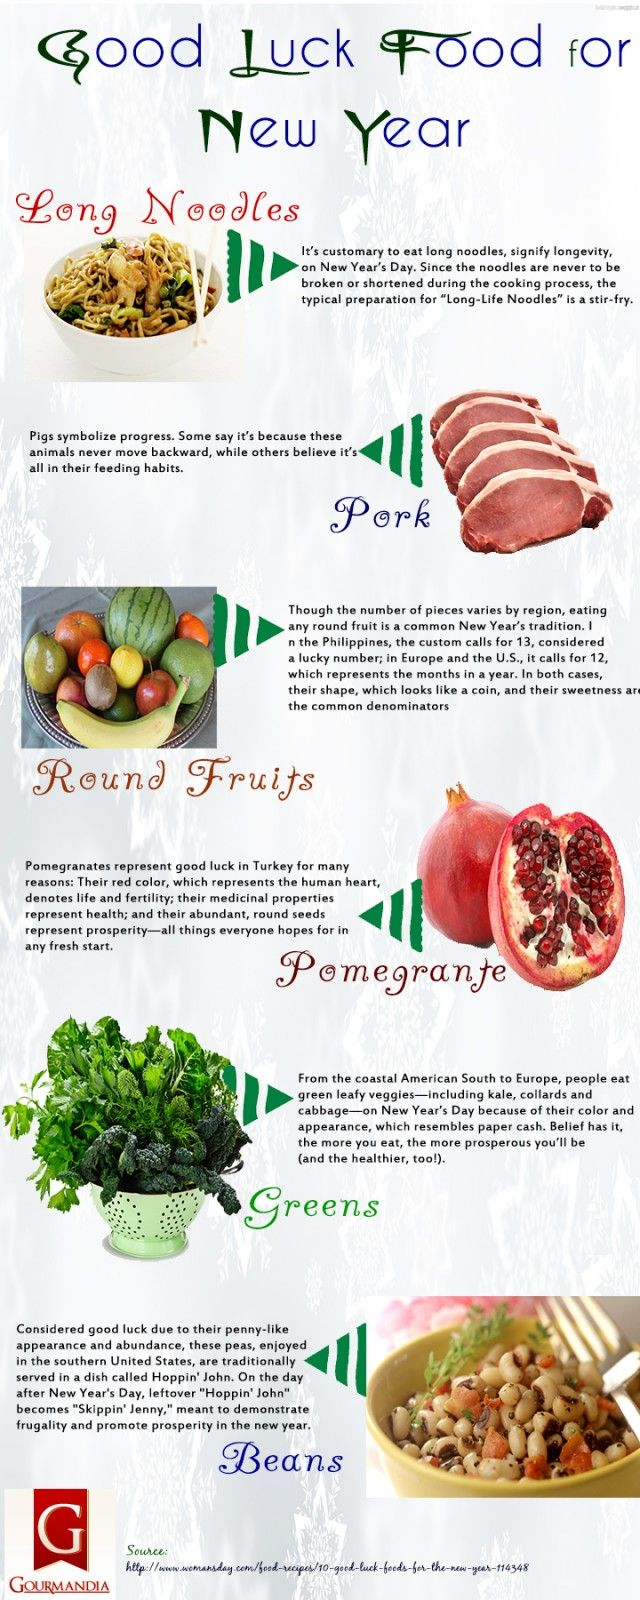 Good Luck Food Infographic Quickie Health New Years Day Meal Lucky Food Food